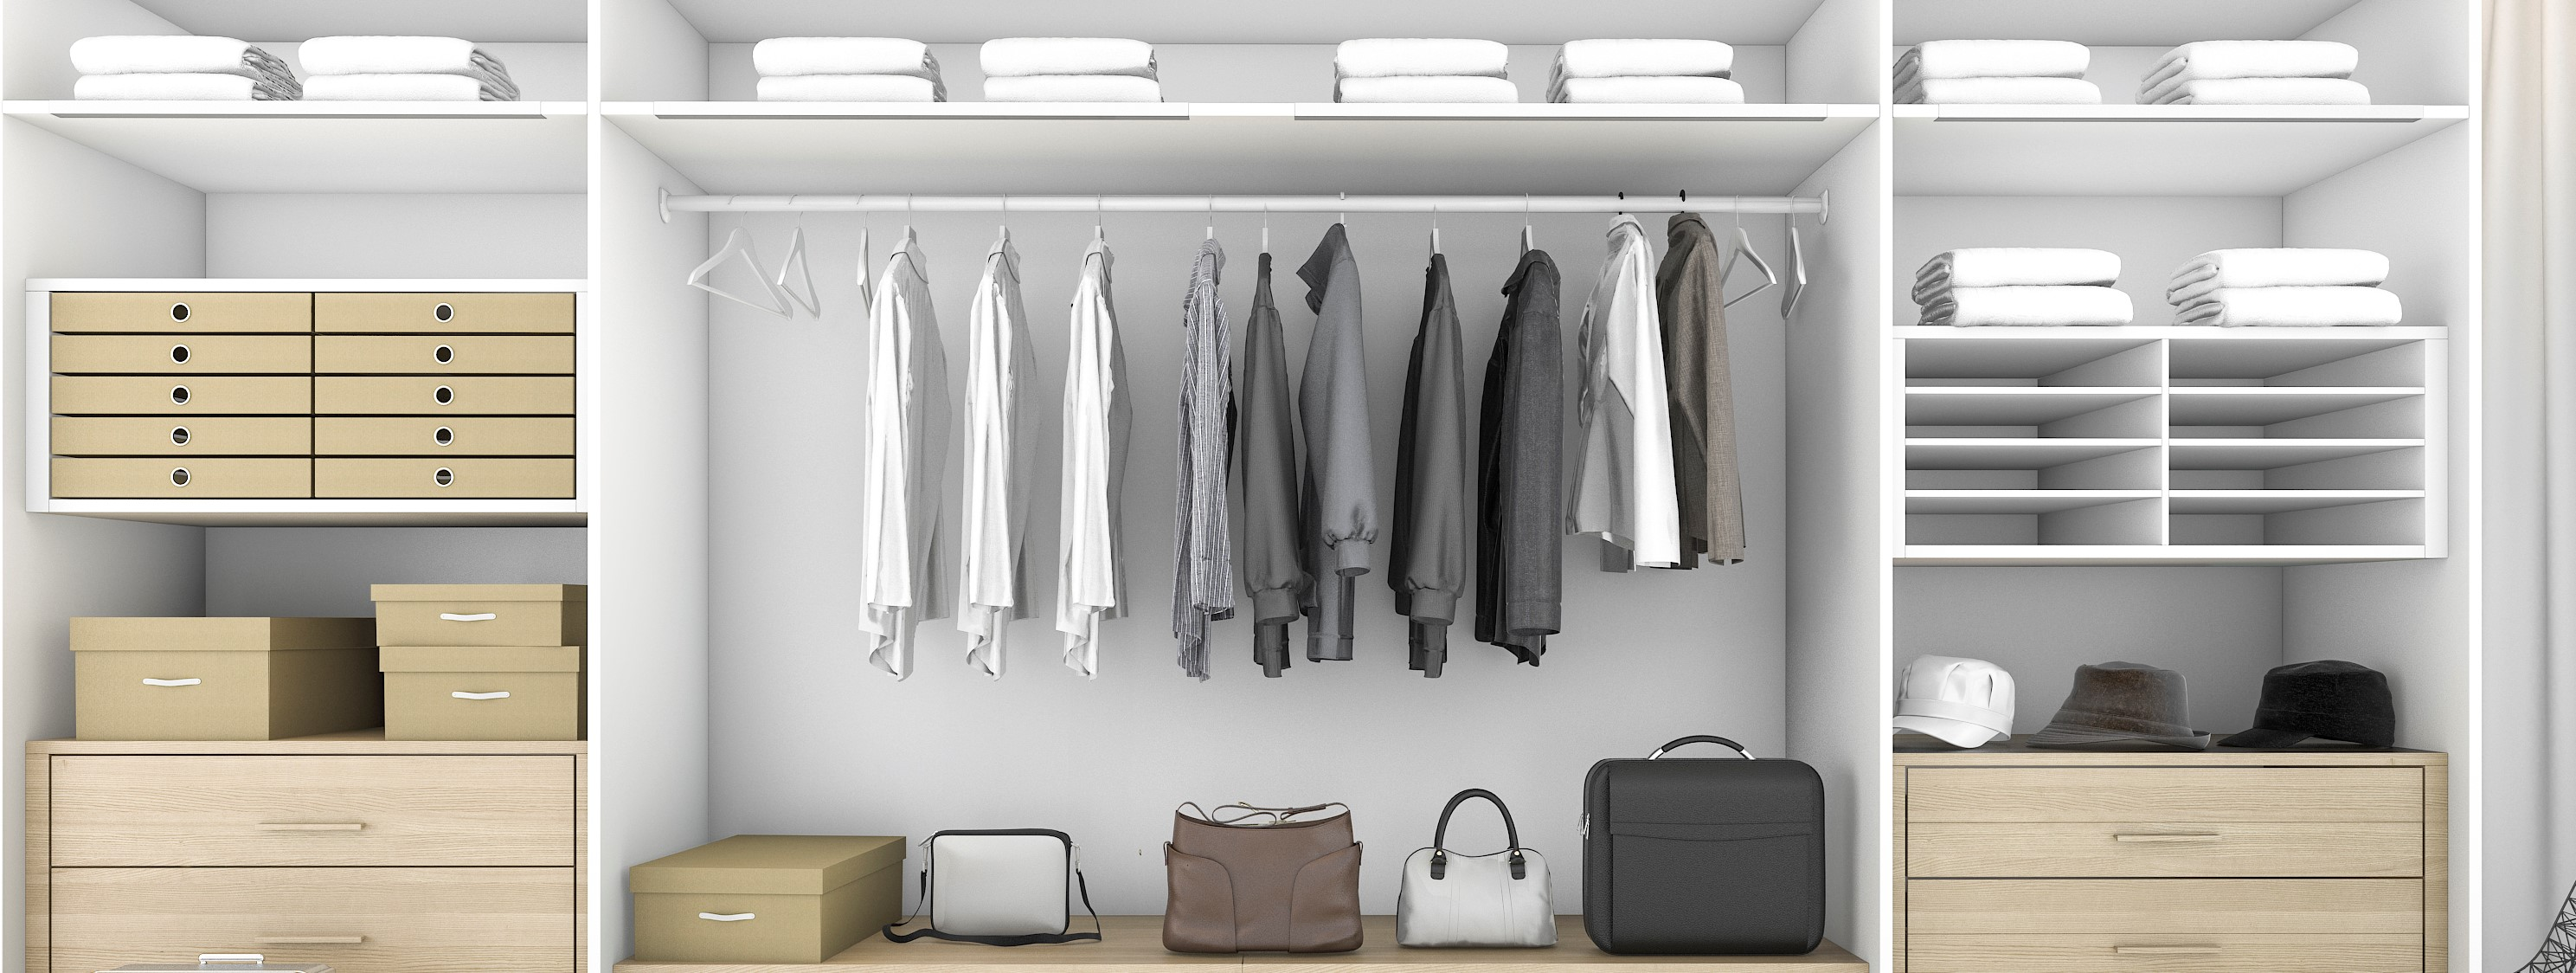 Treat your data like your closet